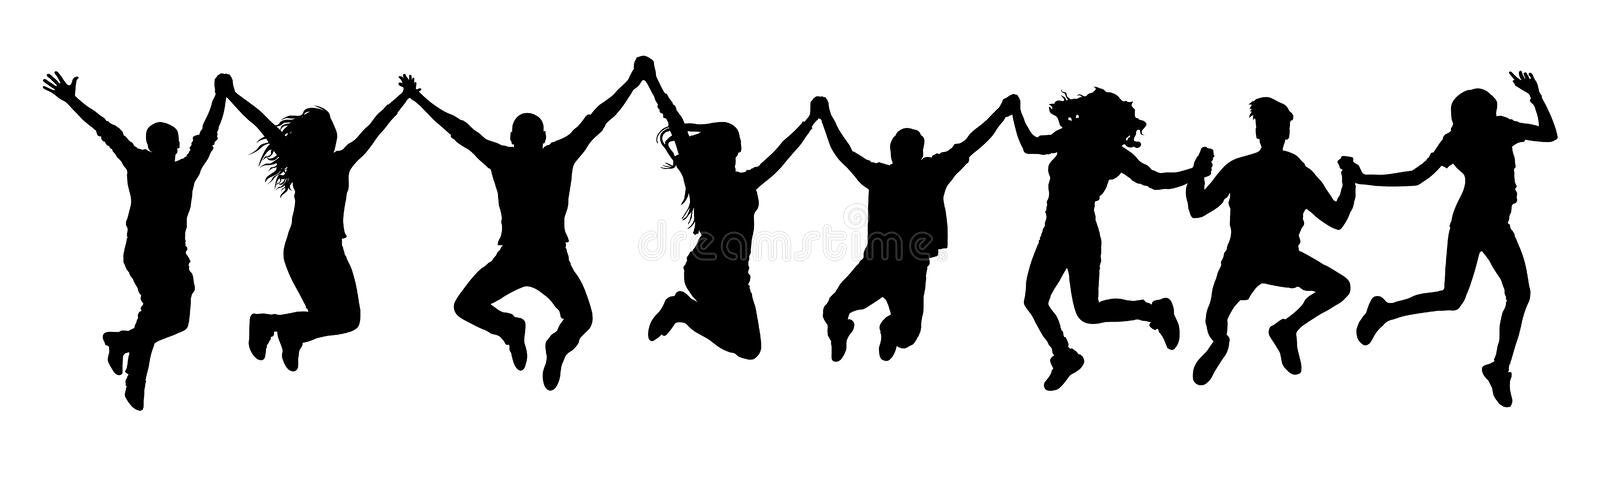 People holding hands in a jump silhouette. vector illustration